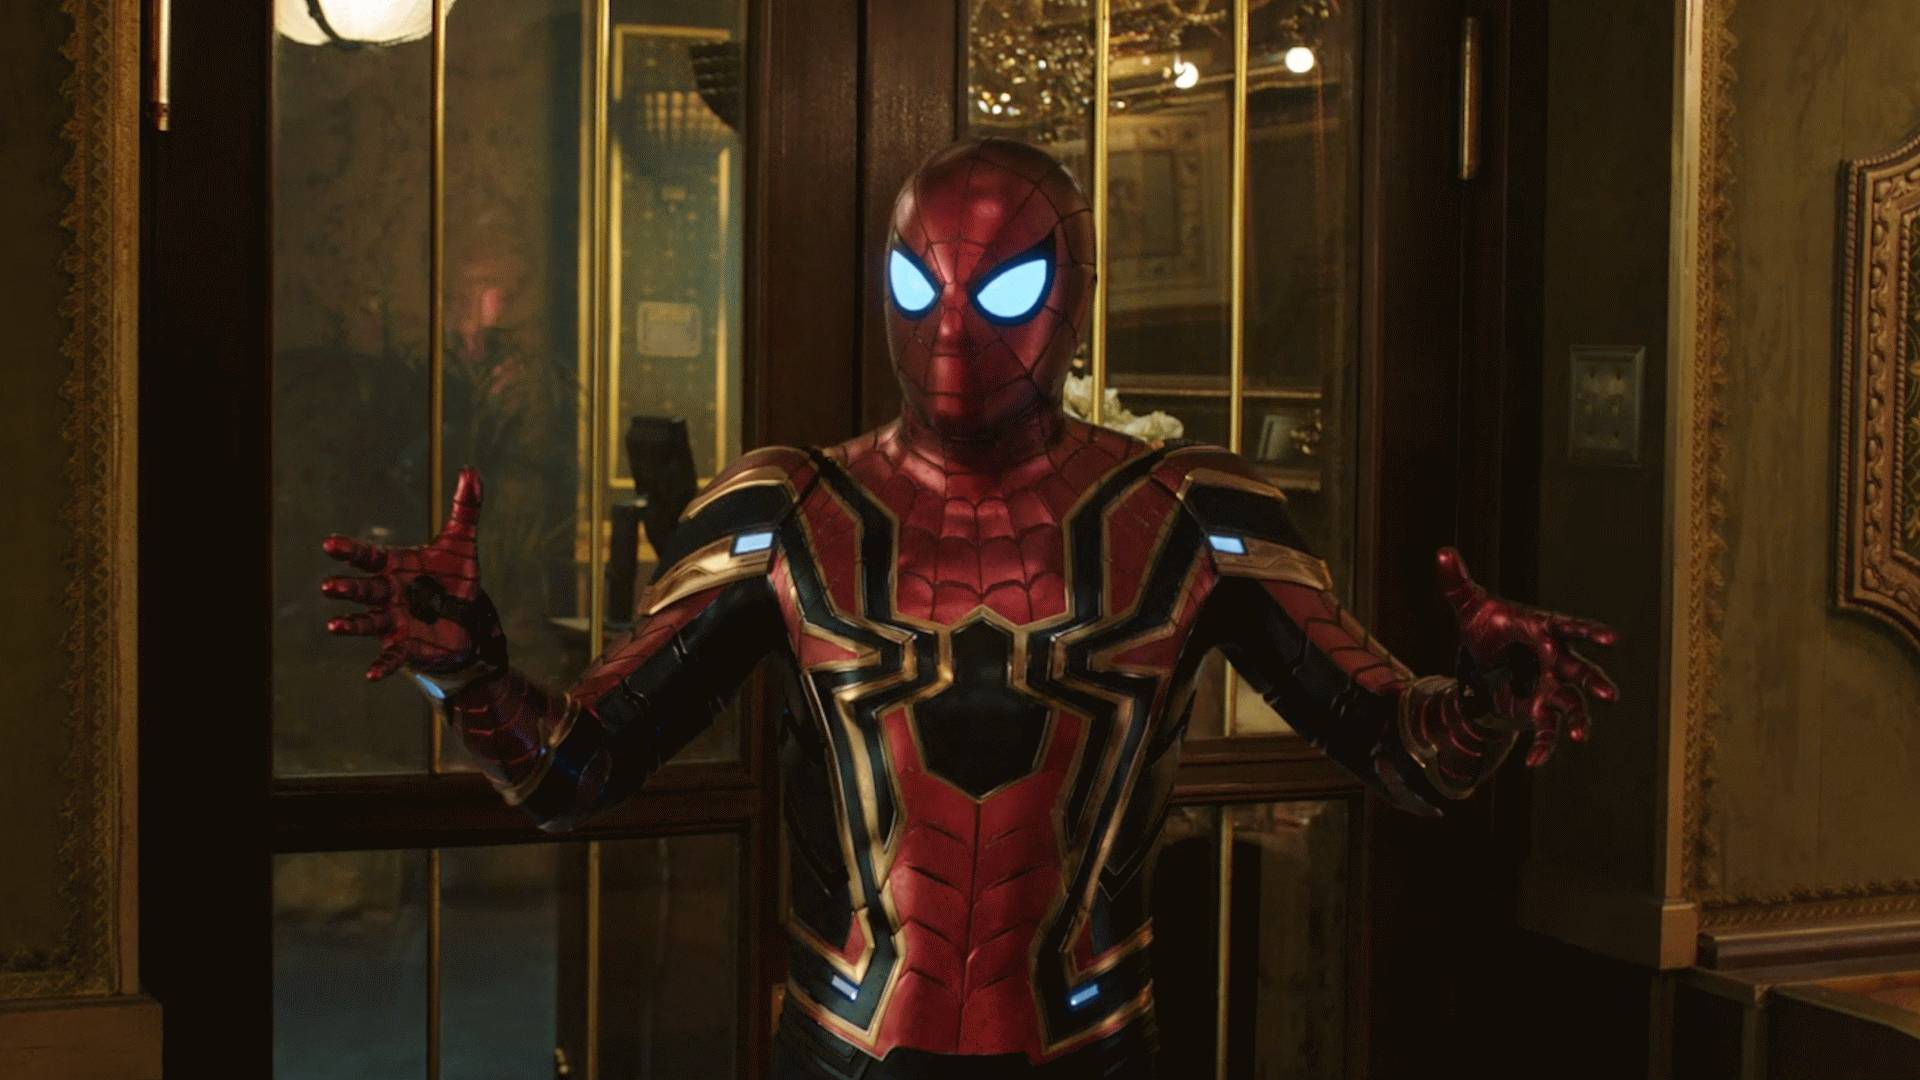 'Spider-Man: Far From Home' Director Sets Record Straight On 'Plot Hole'